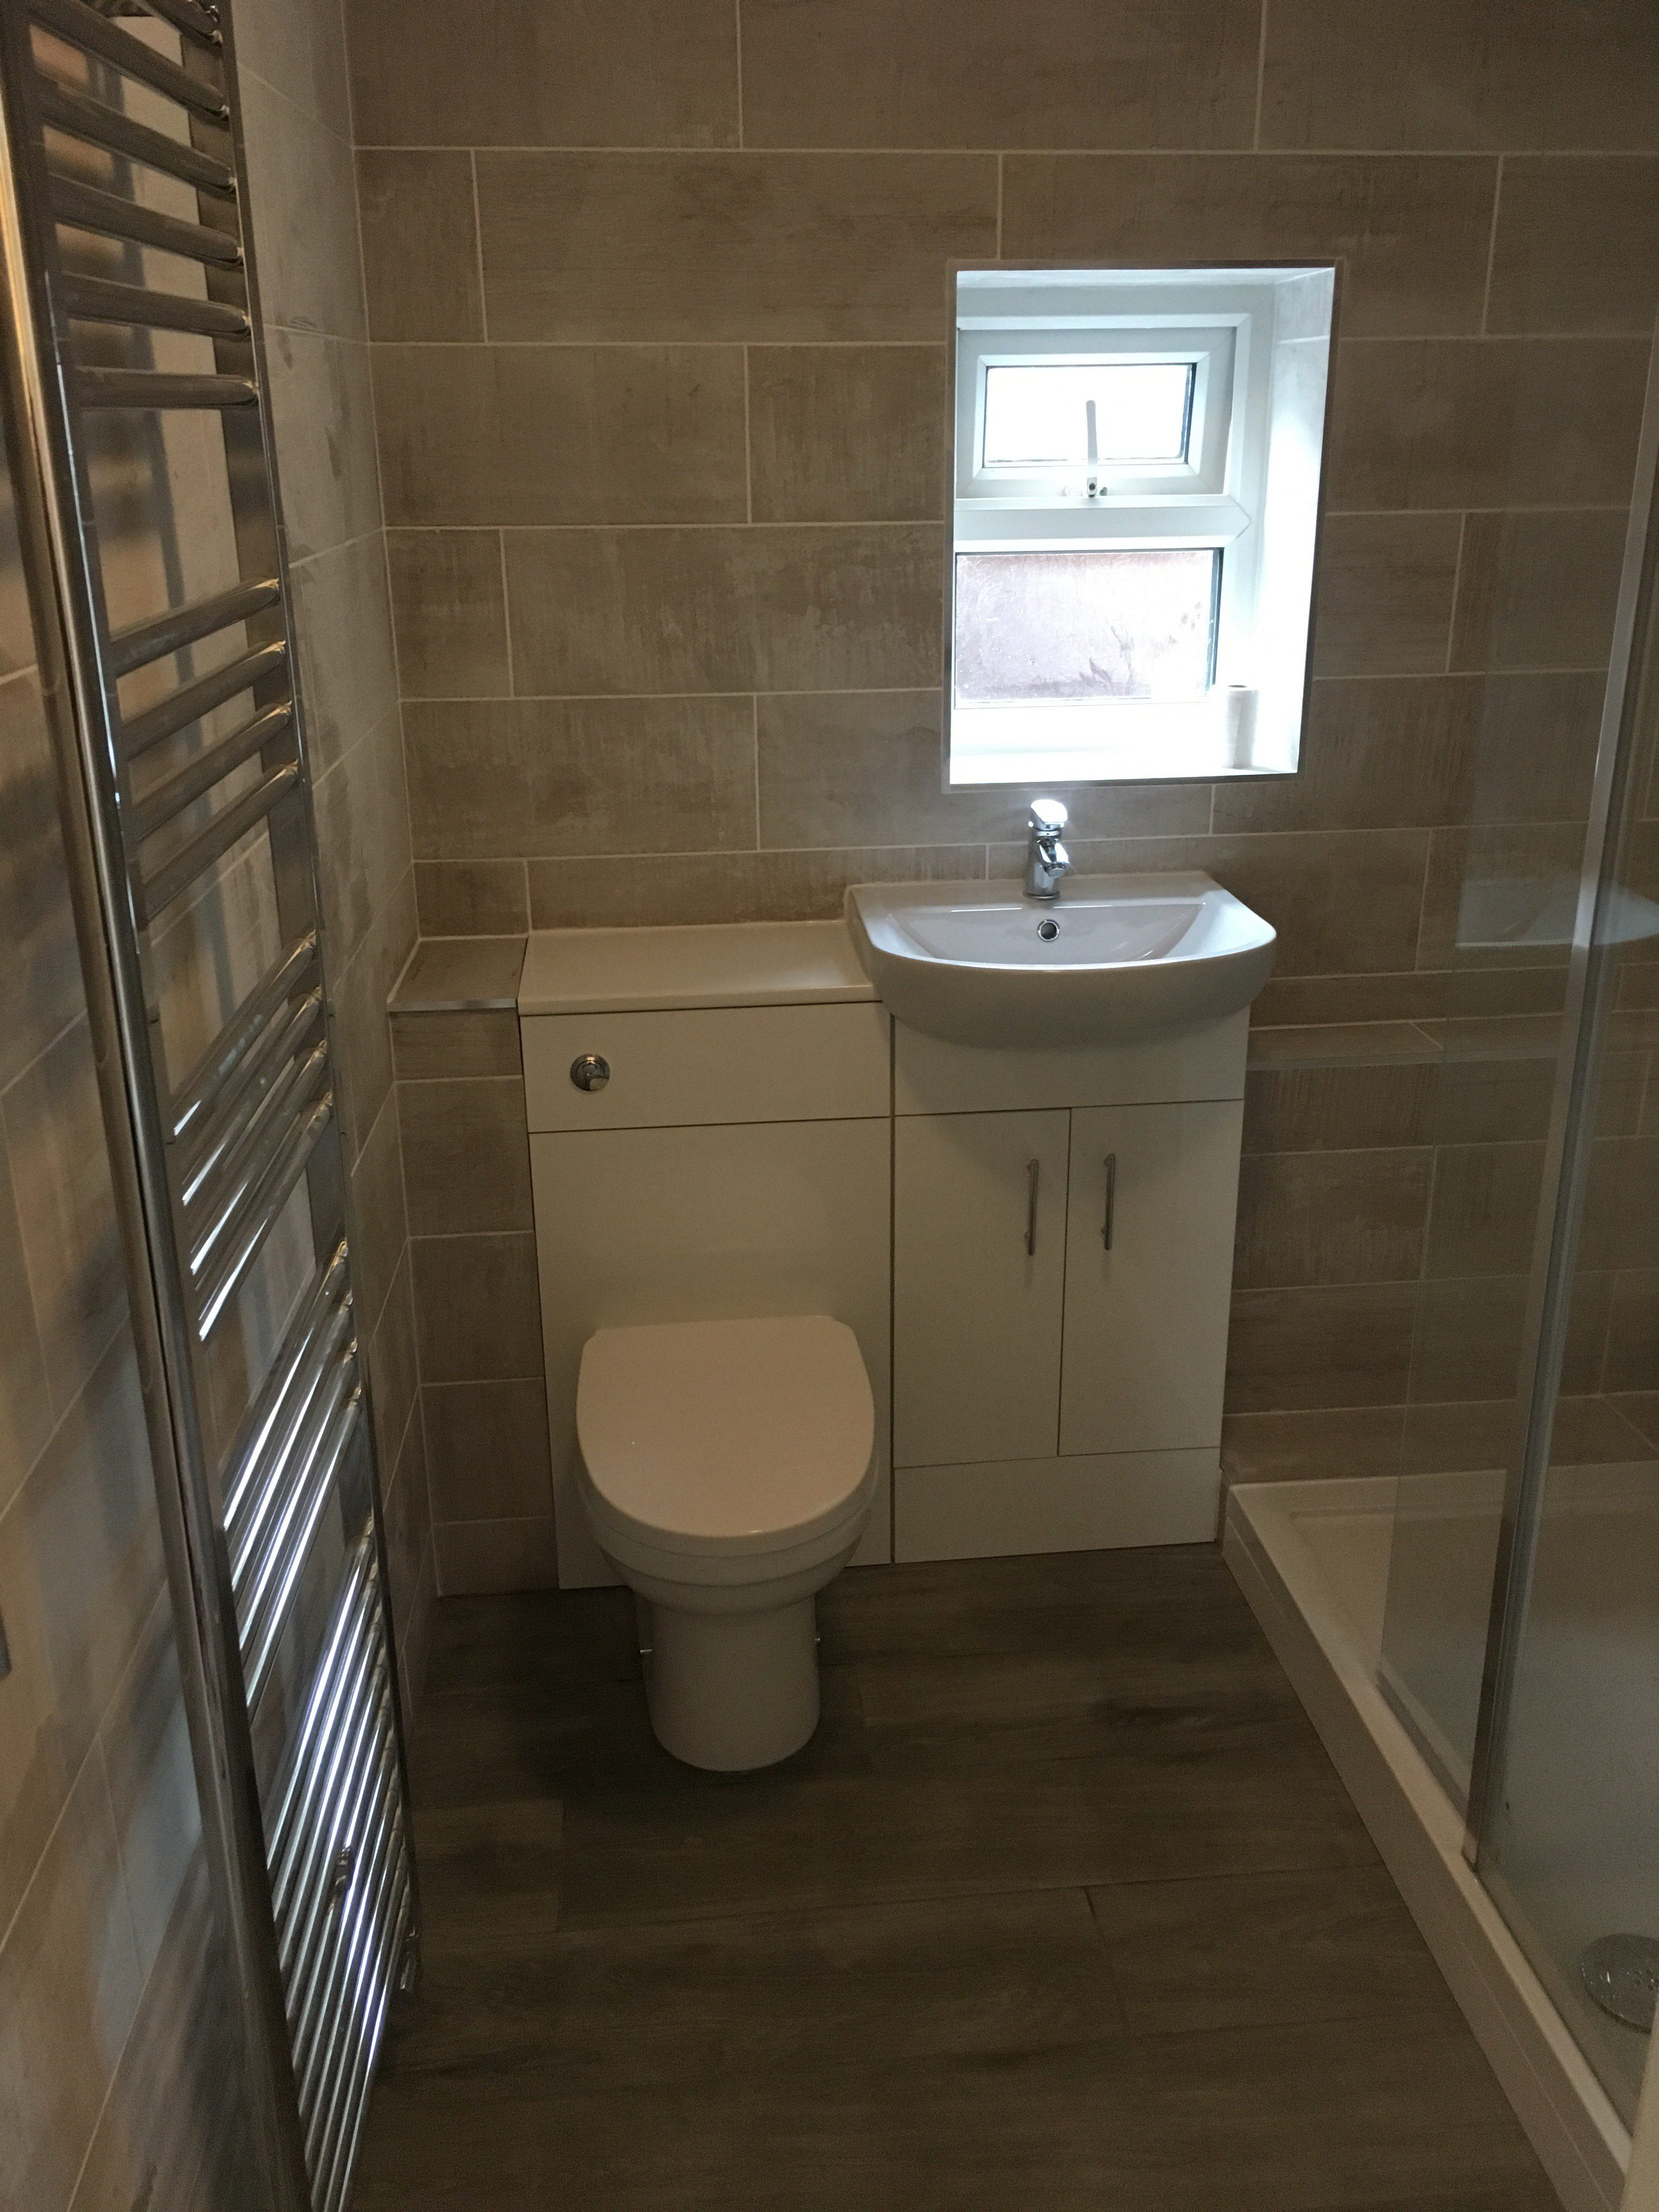 Bath removal and walking shower tray installation in Coningsby